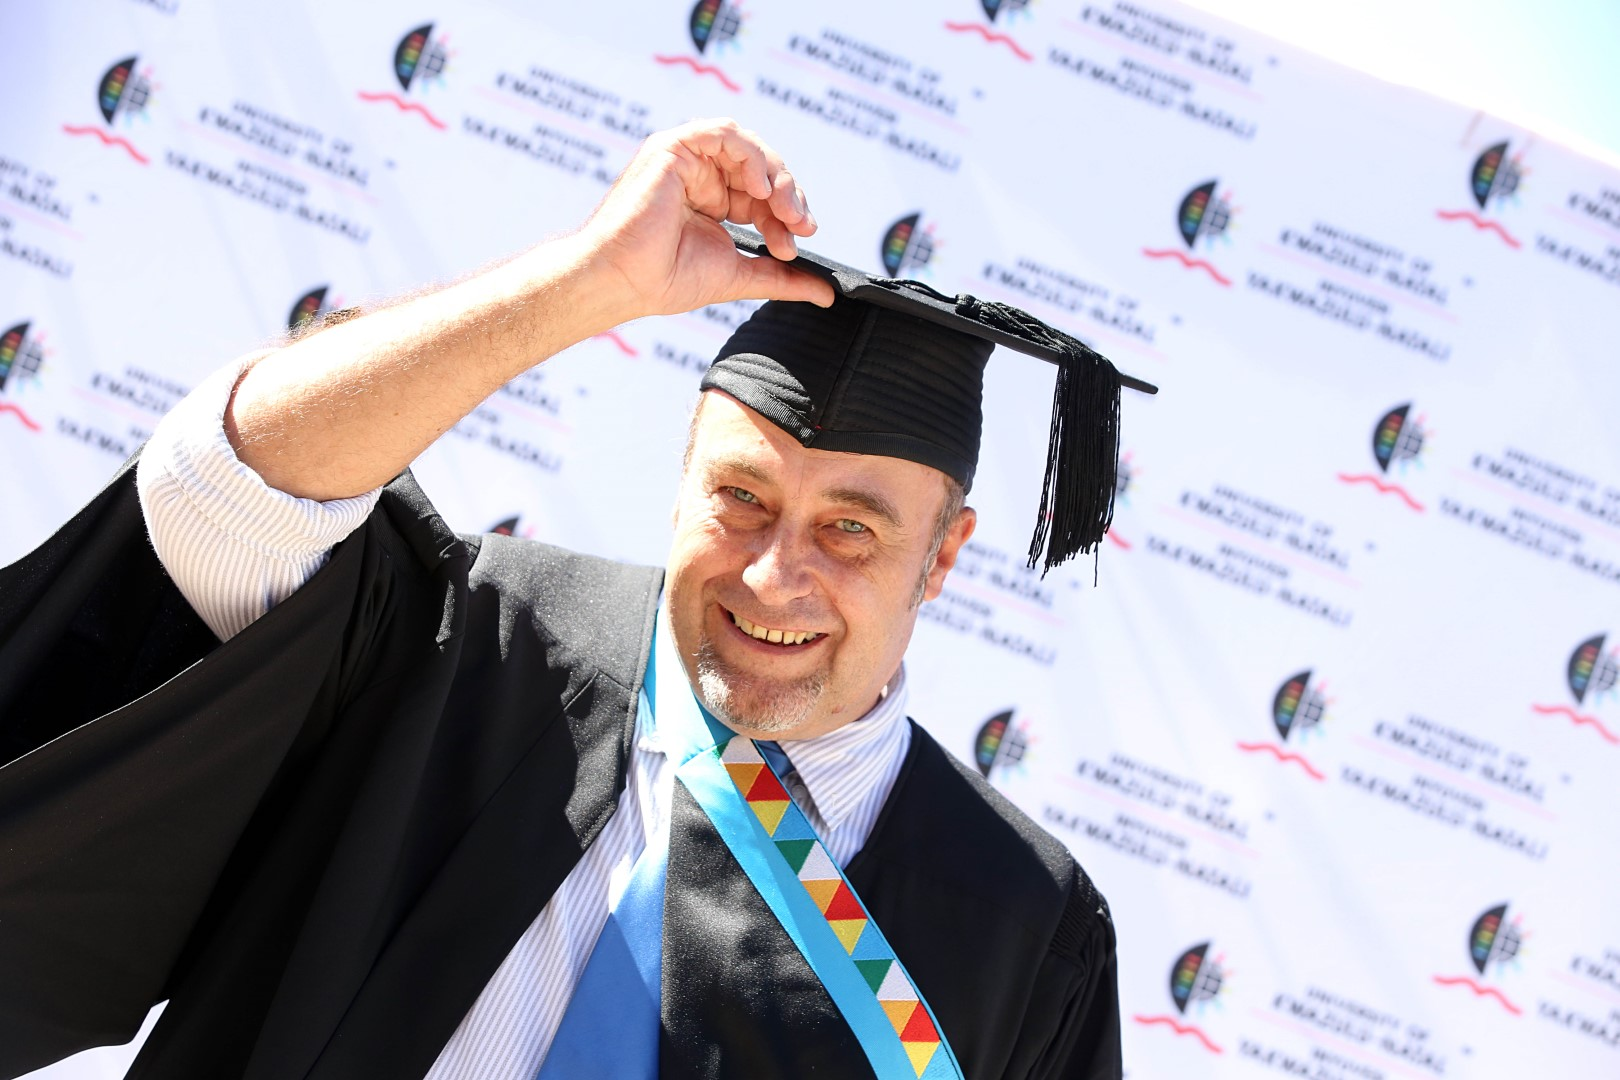 UKZN staffer and filmmaker Mr Michael Hatton graduates with his Masters in Arts.